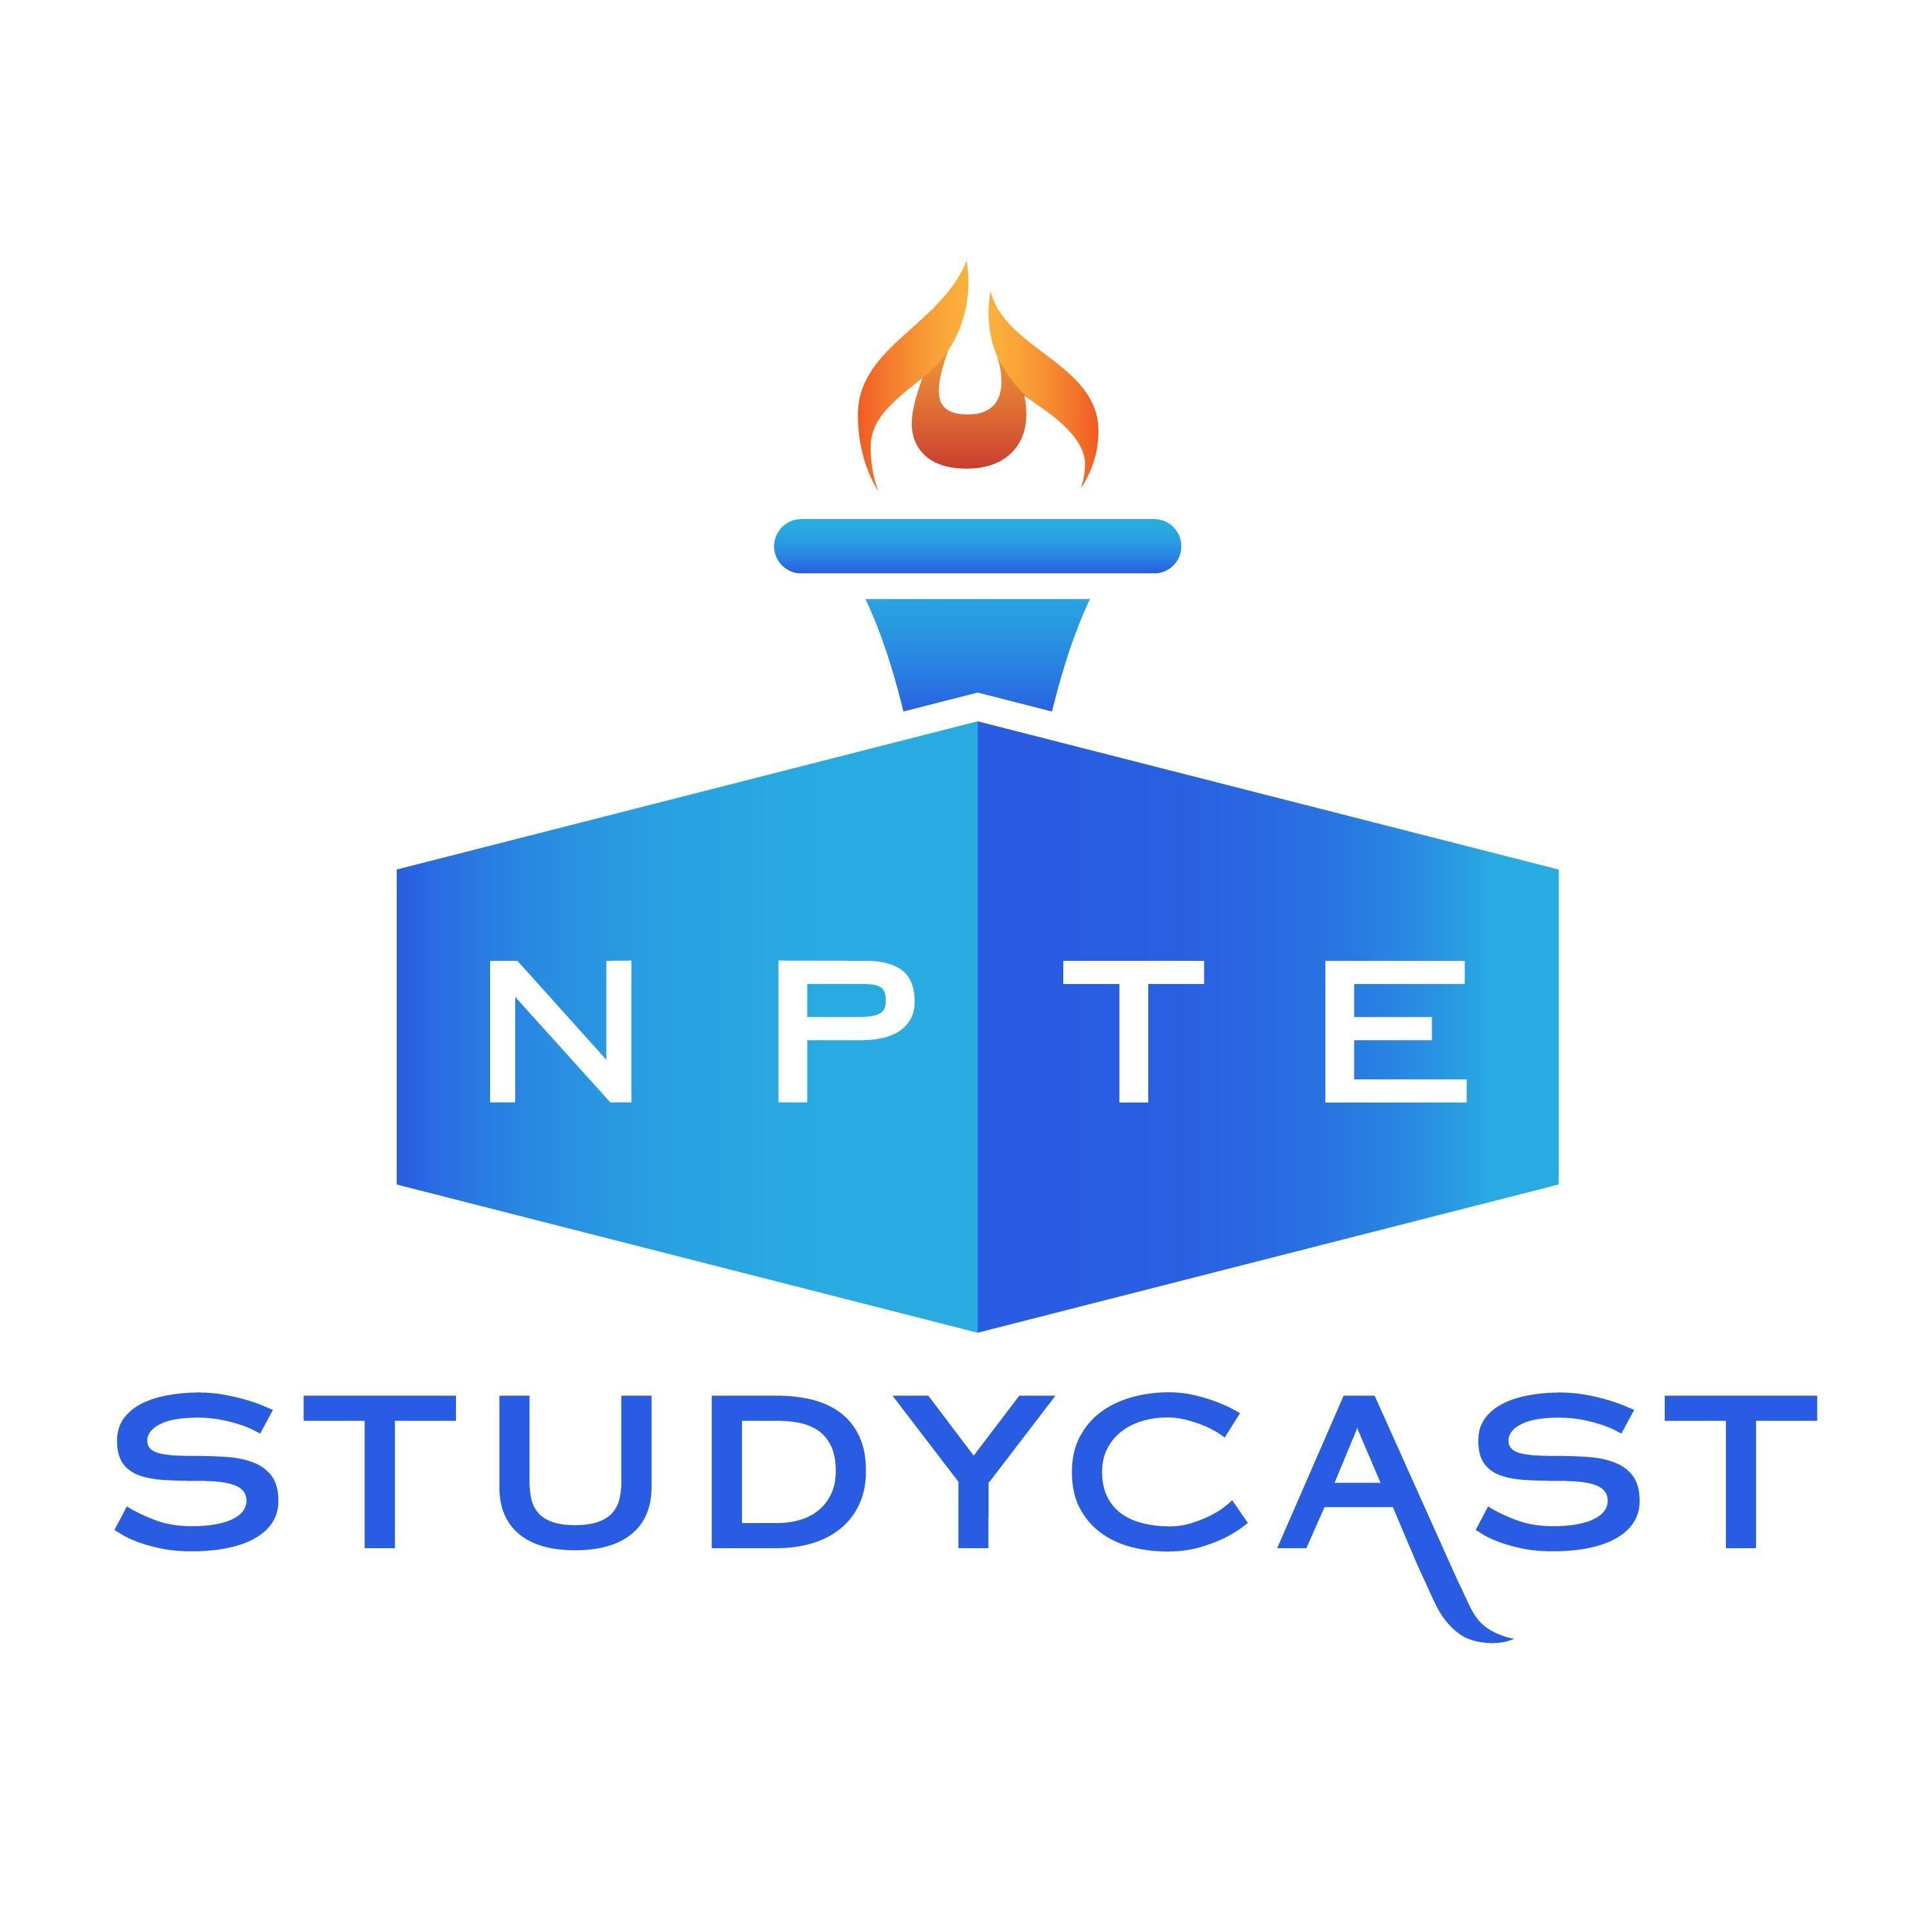 NPTE Studycast   Physical Therapy